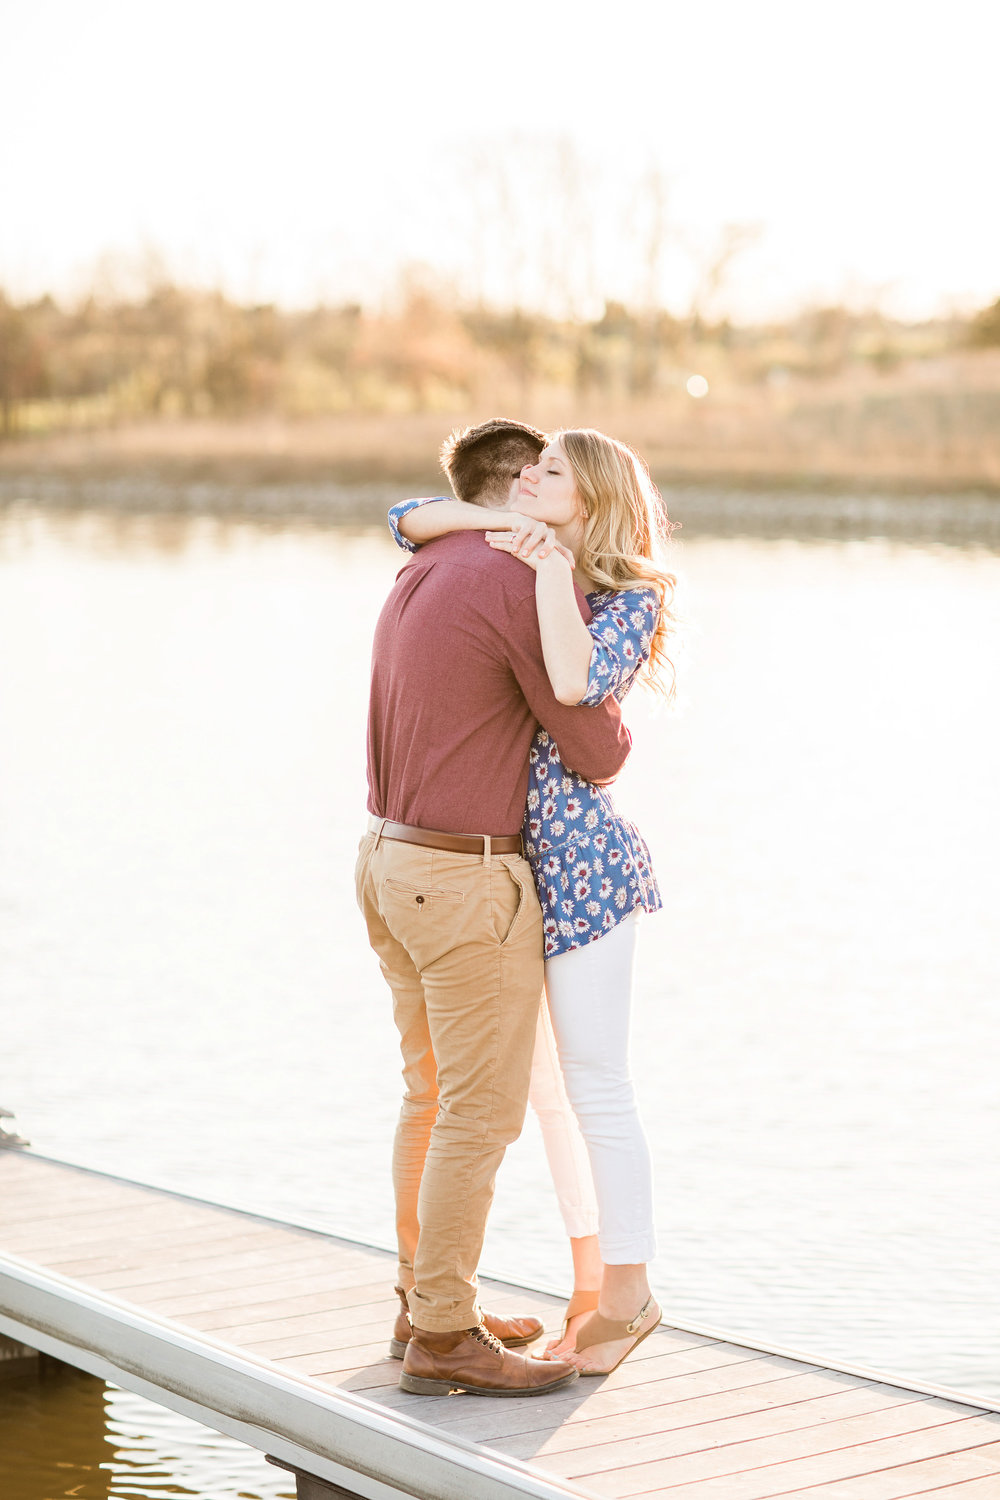 cincinnati wedding photographer caesars creek engagement session lauren day photography-3.jpg